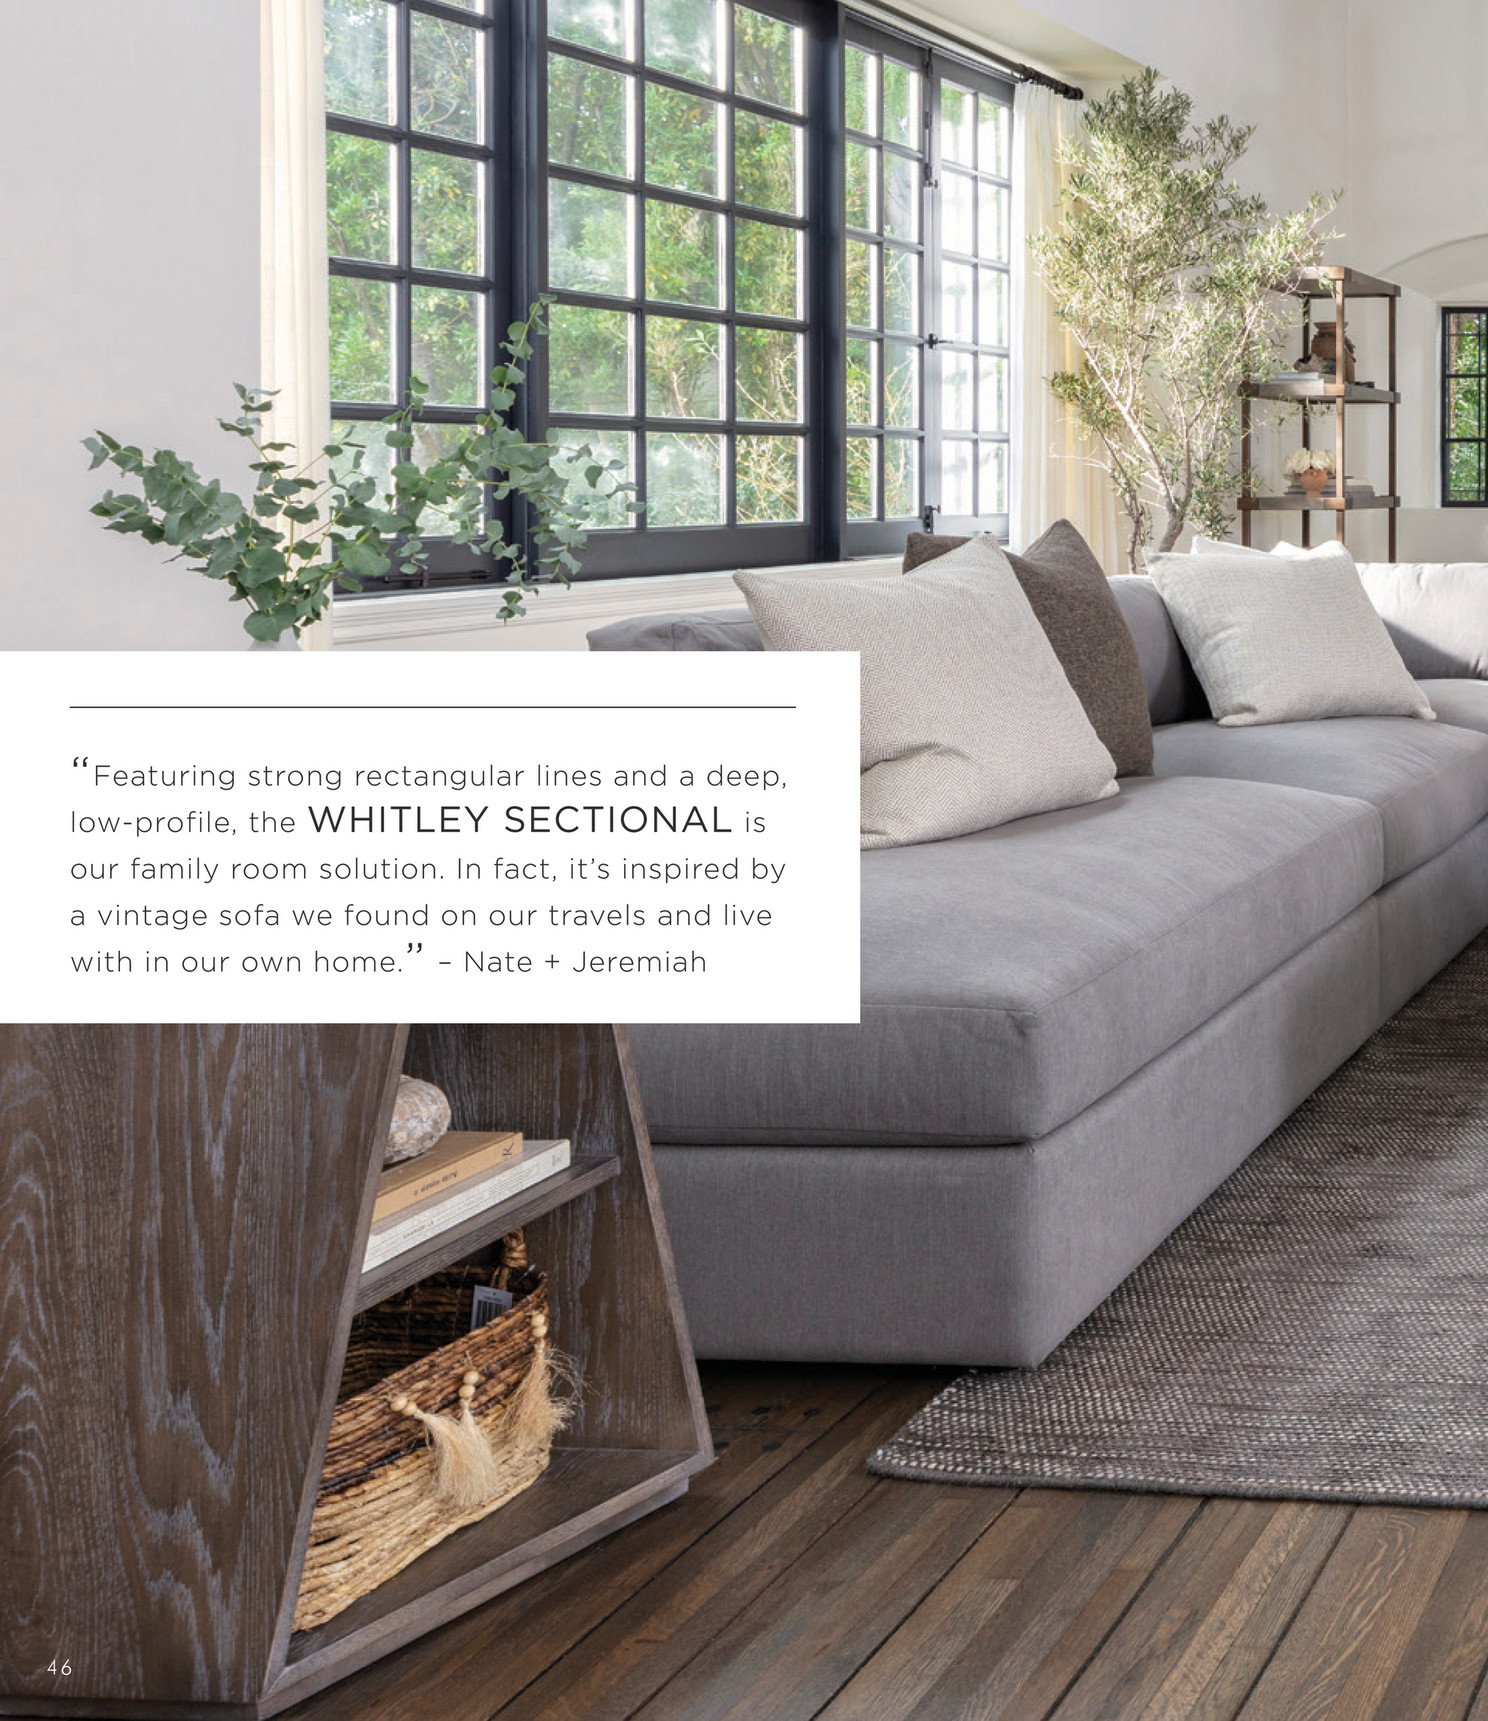 Admirable Living Spaces Nate Jeremiah For Living Spaces Lookbook Lamtechconsult Wood Chair Design Ideas Lamtechconsultcom